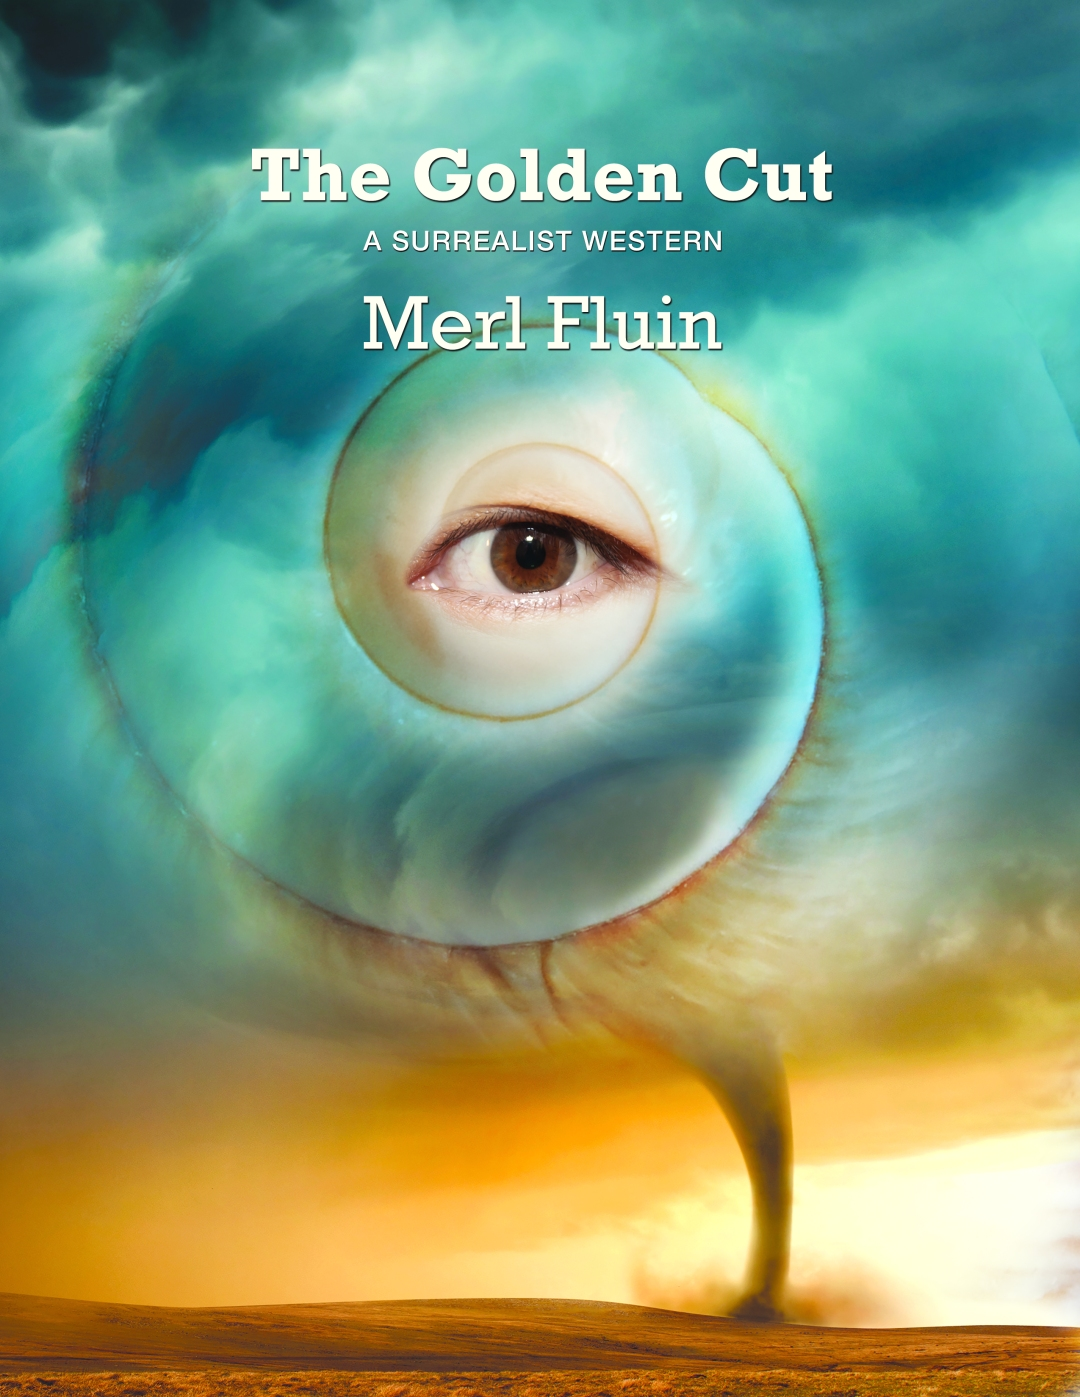 The Golden Cut